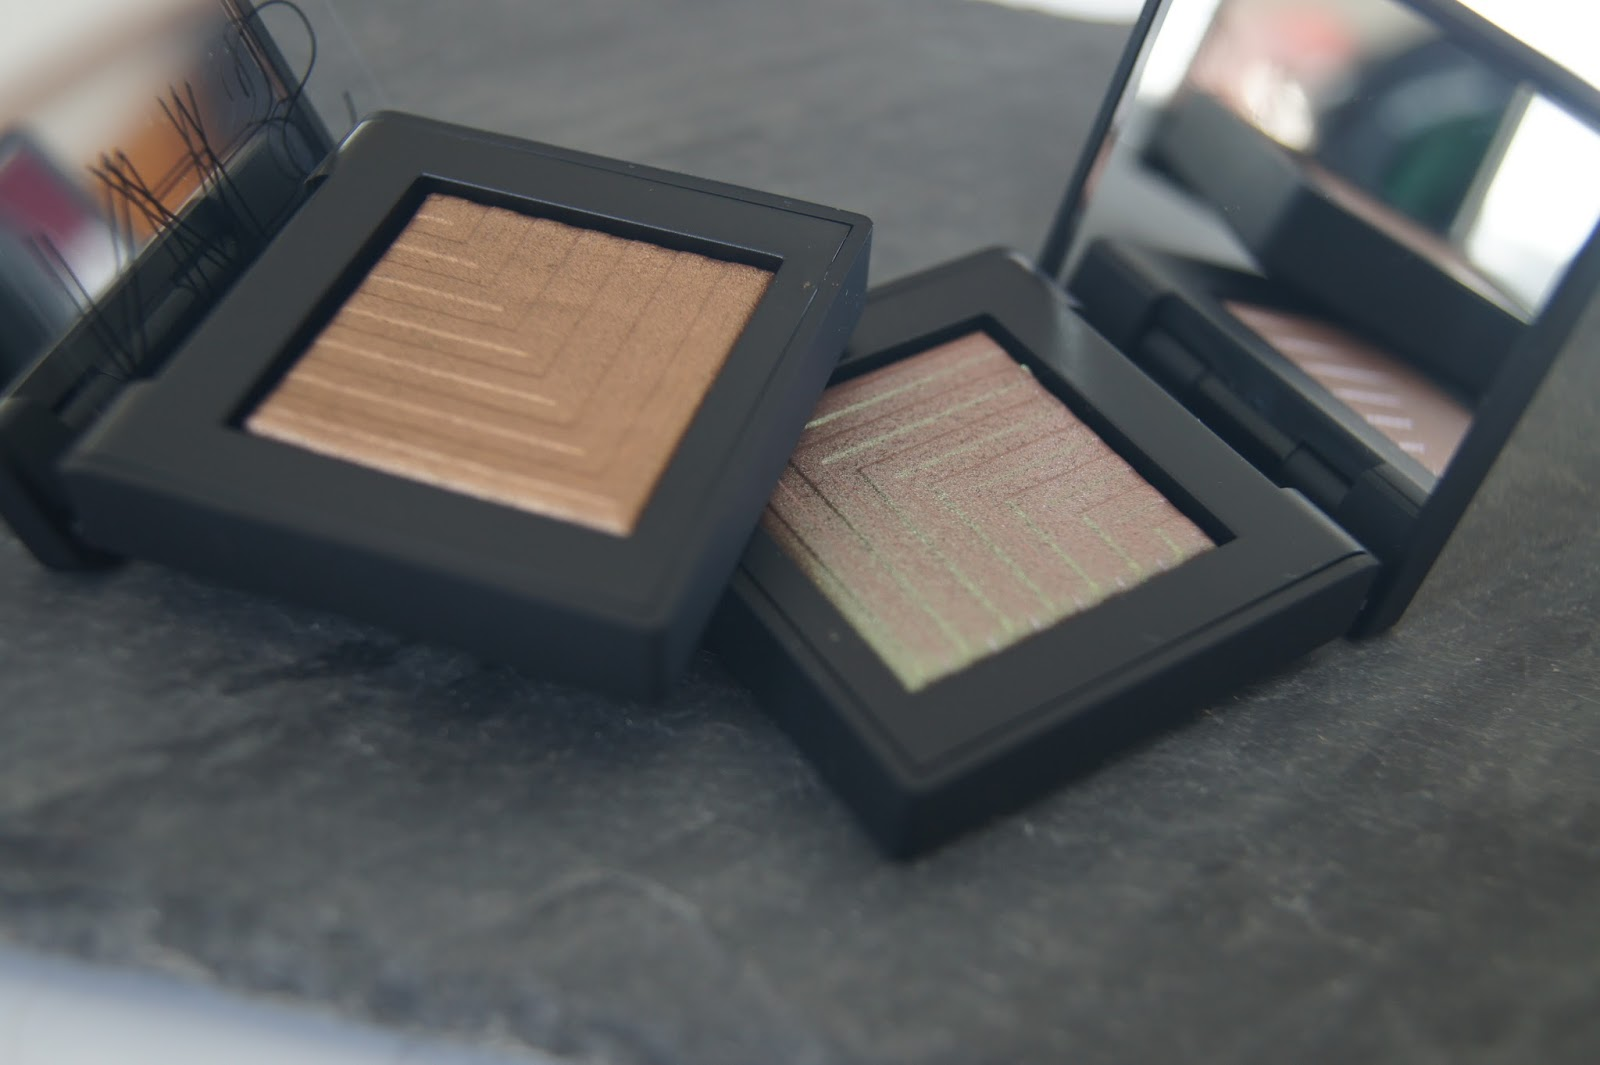 NARS Dual Intensity Eyeshadows-Pasiphae and Telesto